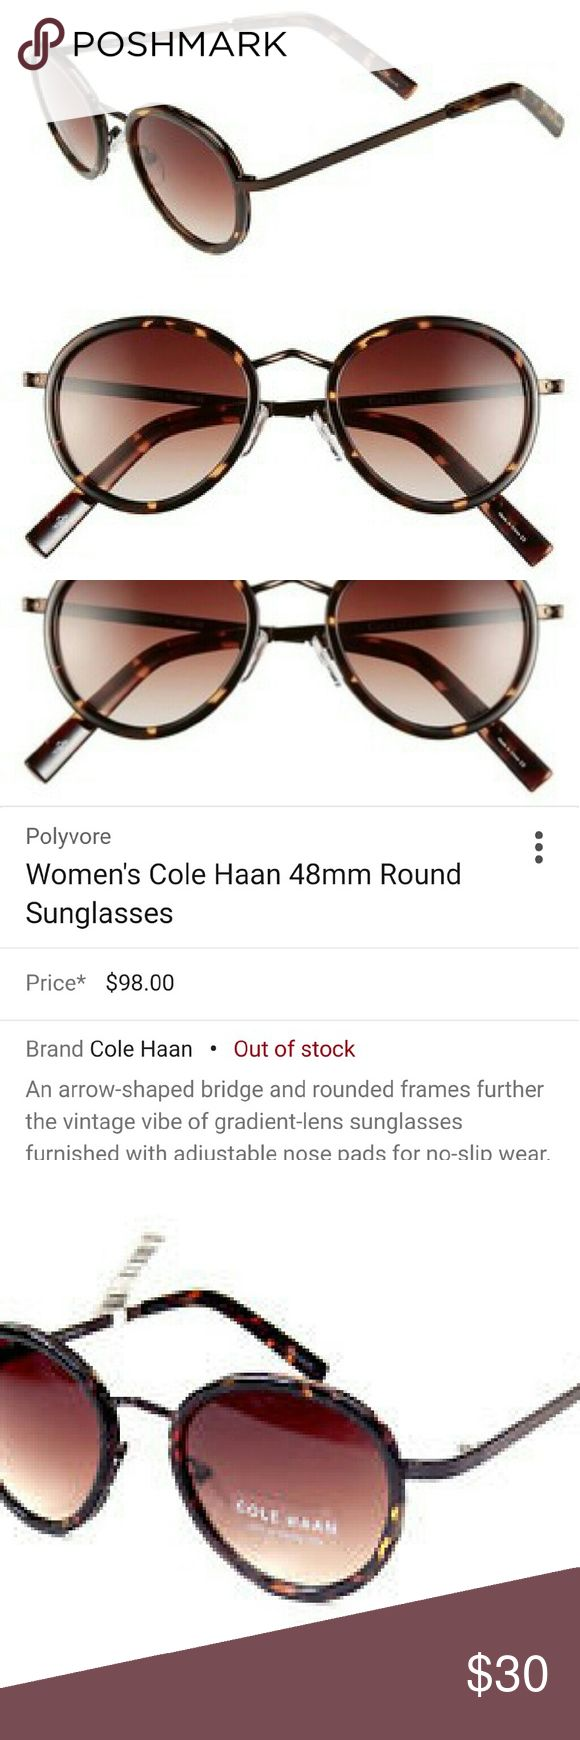 NWT Cole Haan round sunnies New with tags Cole haan round tortoise shell sunglasses. So cute! Cole Haan Accessories Sunglasses